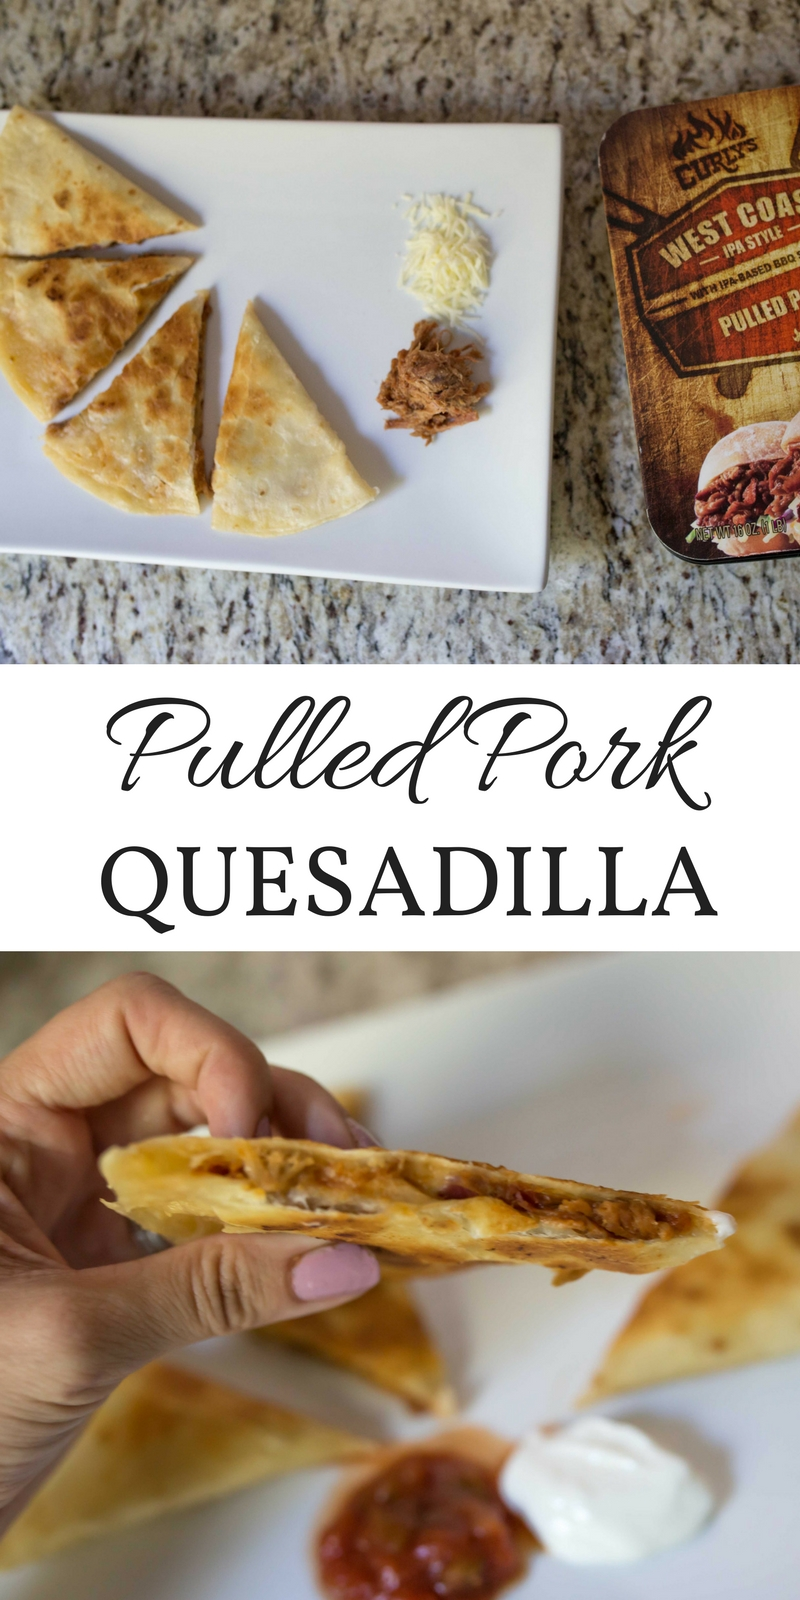 BBQ Pulled Pork Quesadilla by Atlanta blogger Casual Claire